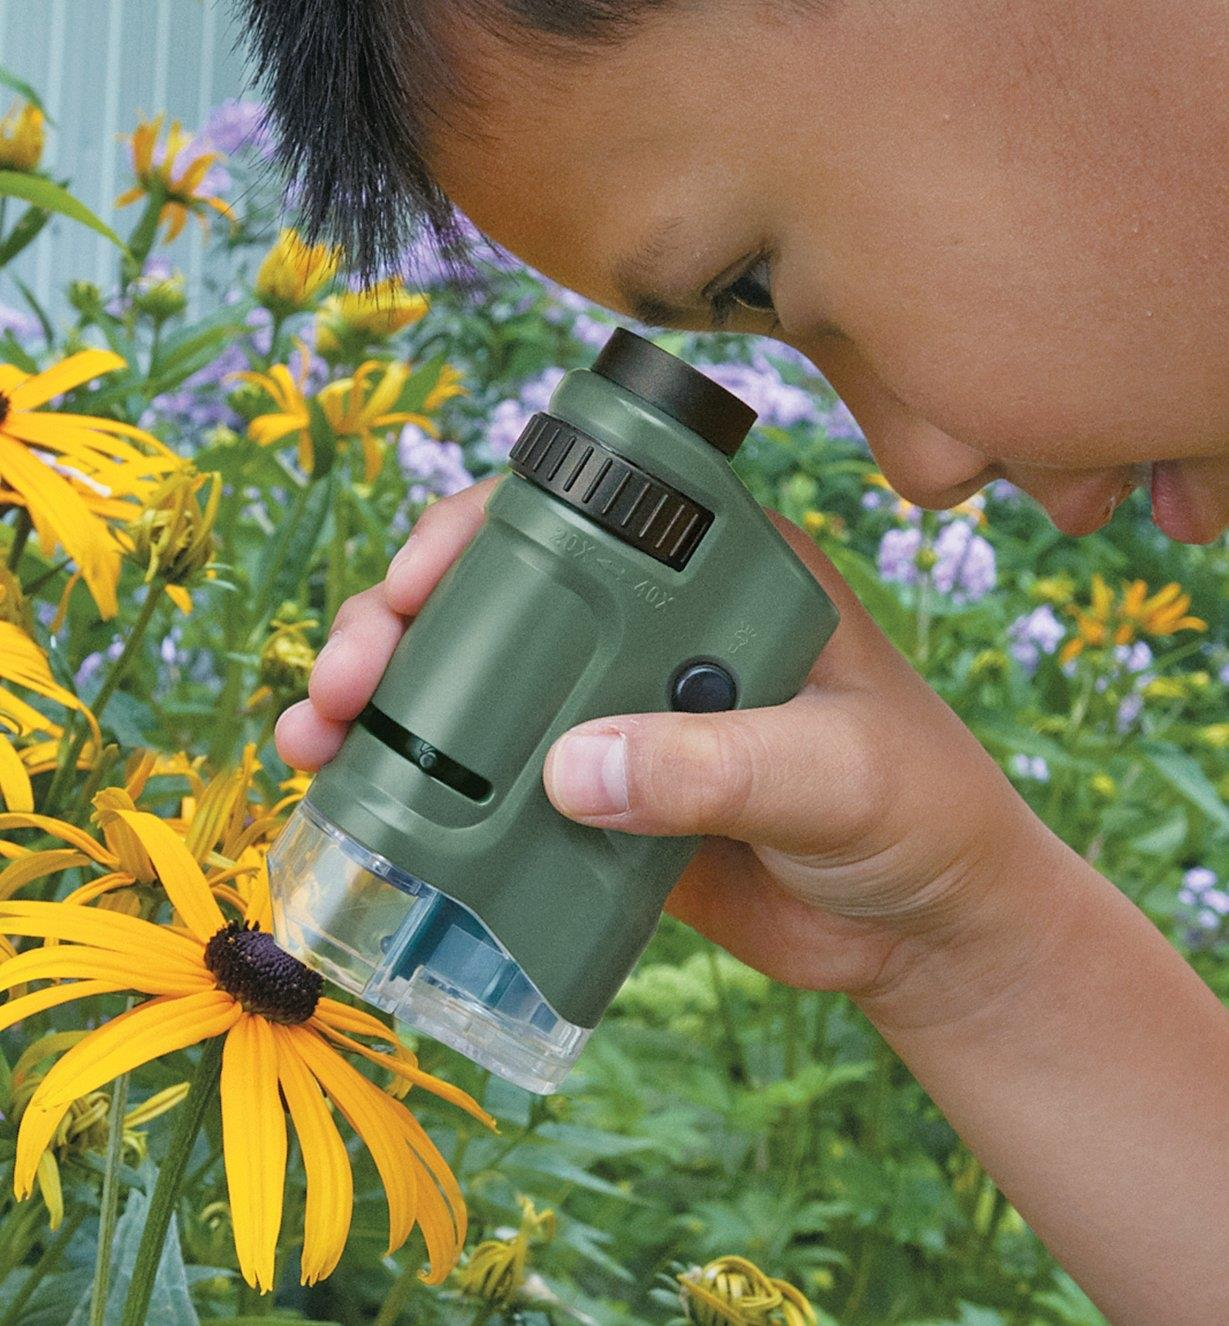 A child uses the Pocket Microscope to look at a flower